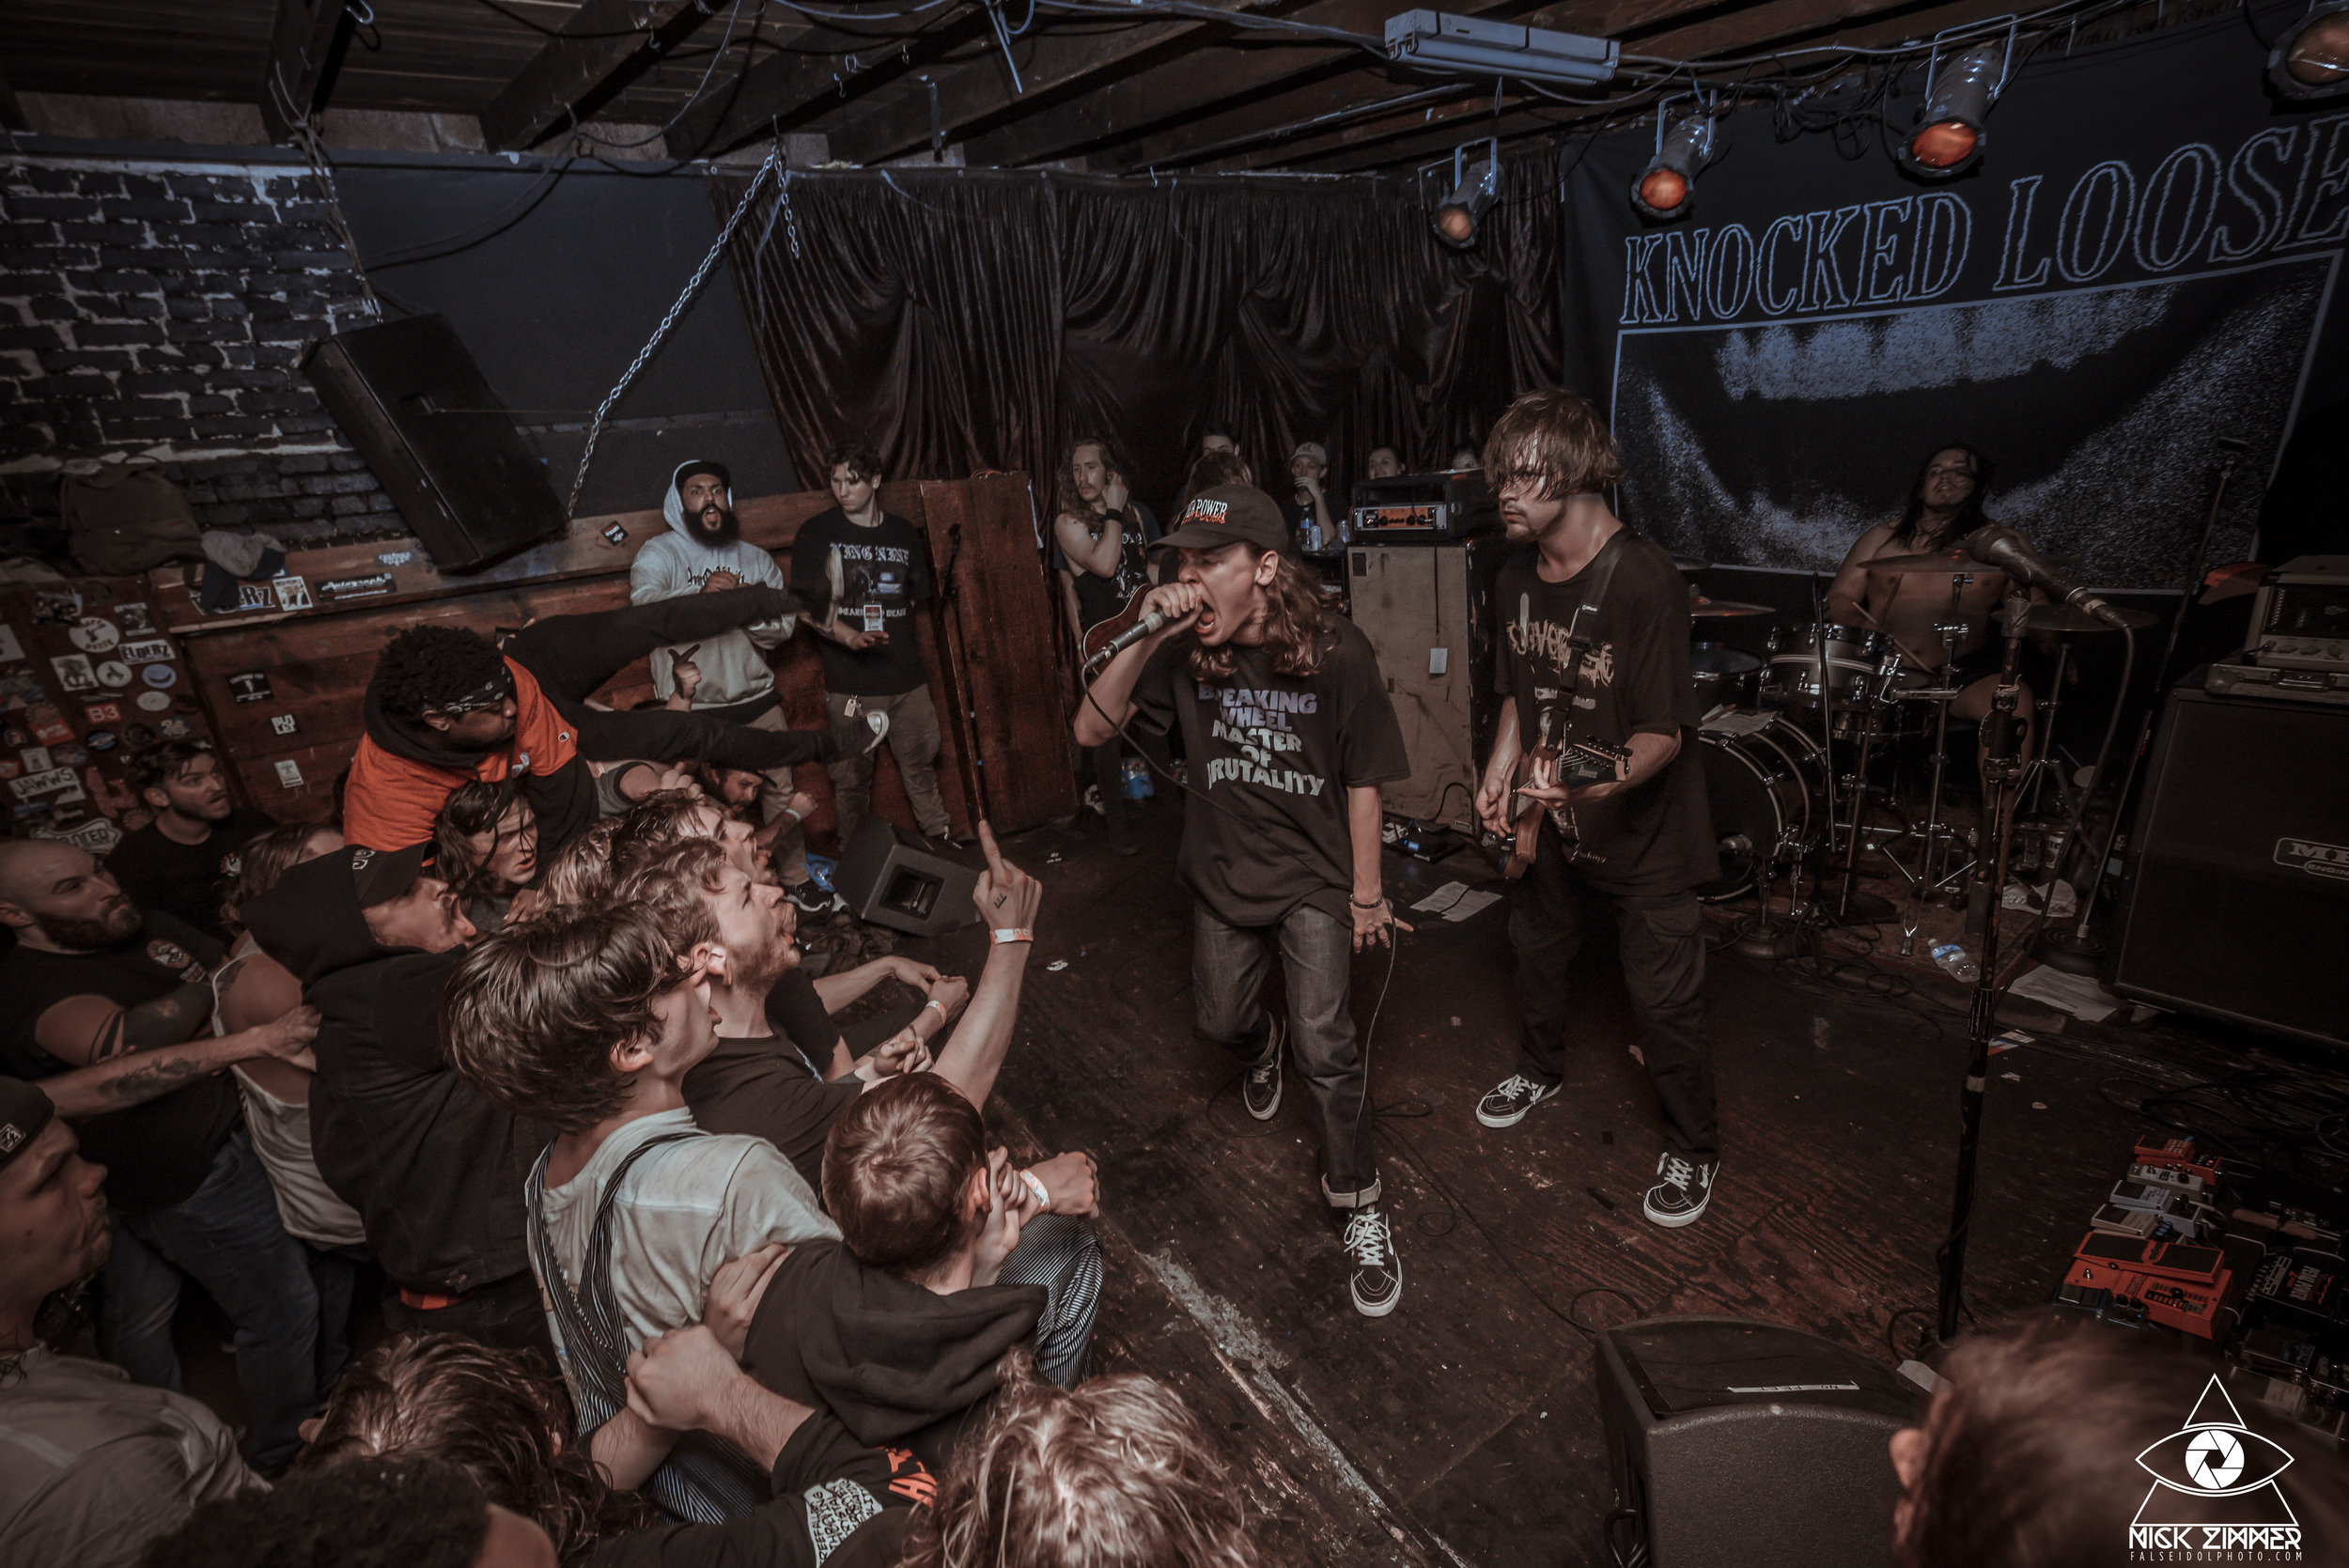 Knocked Loose - Venue: The EndCity: Nashville, TNDate: February 28, 2018